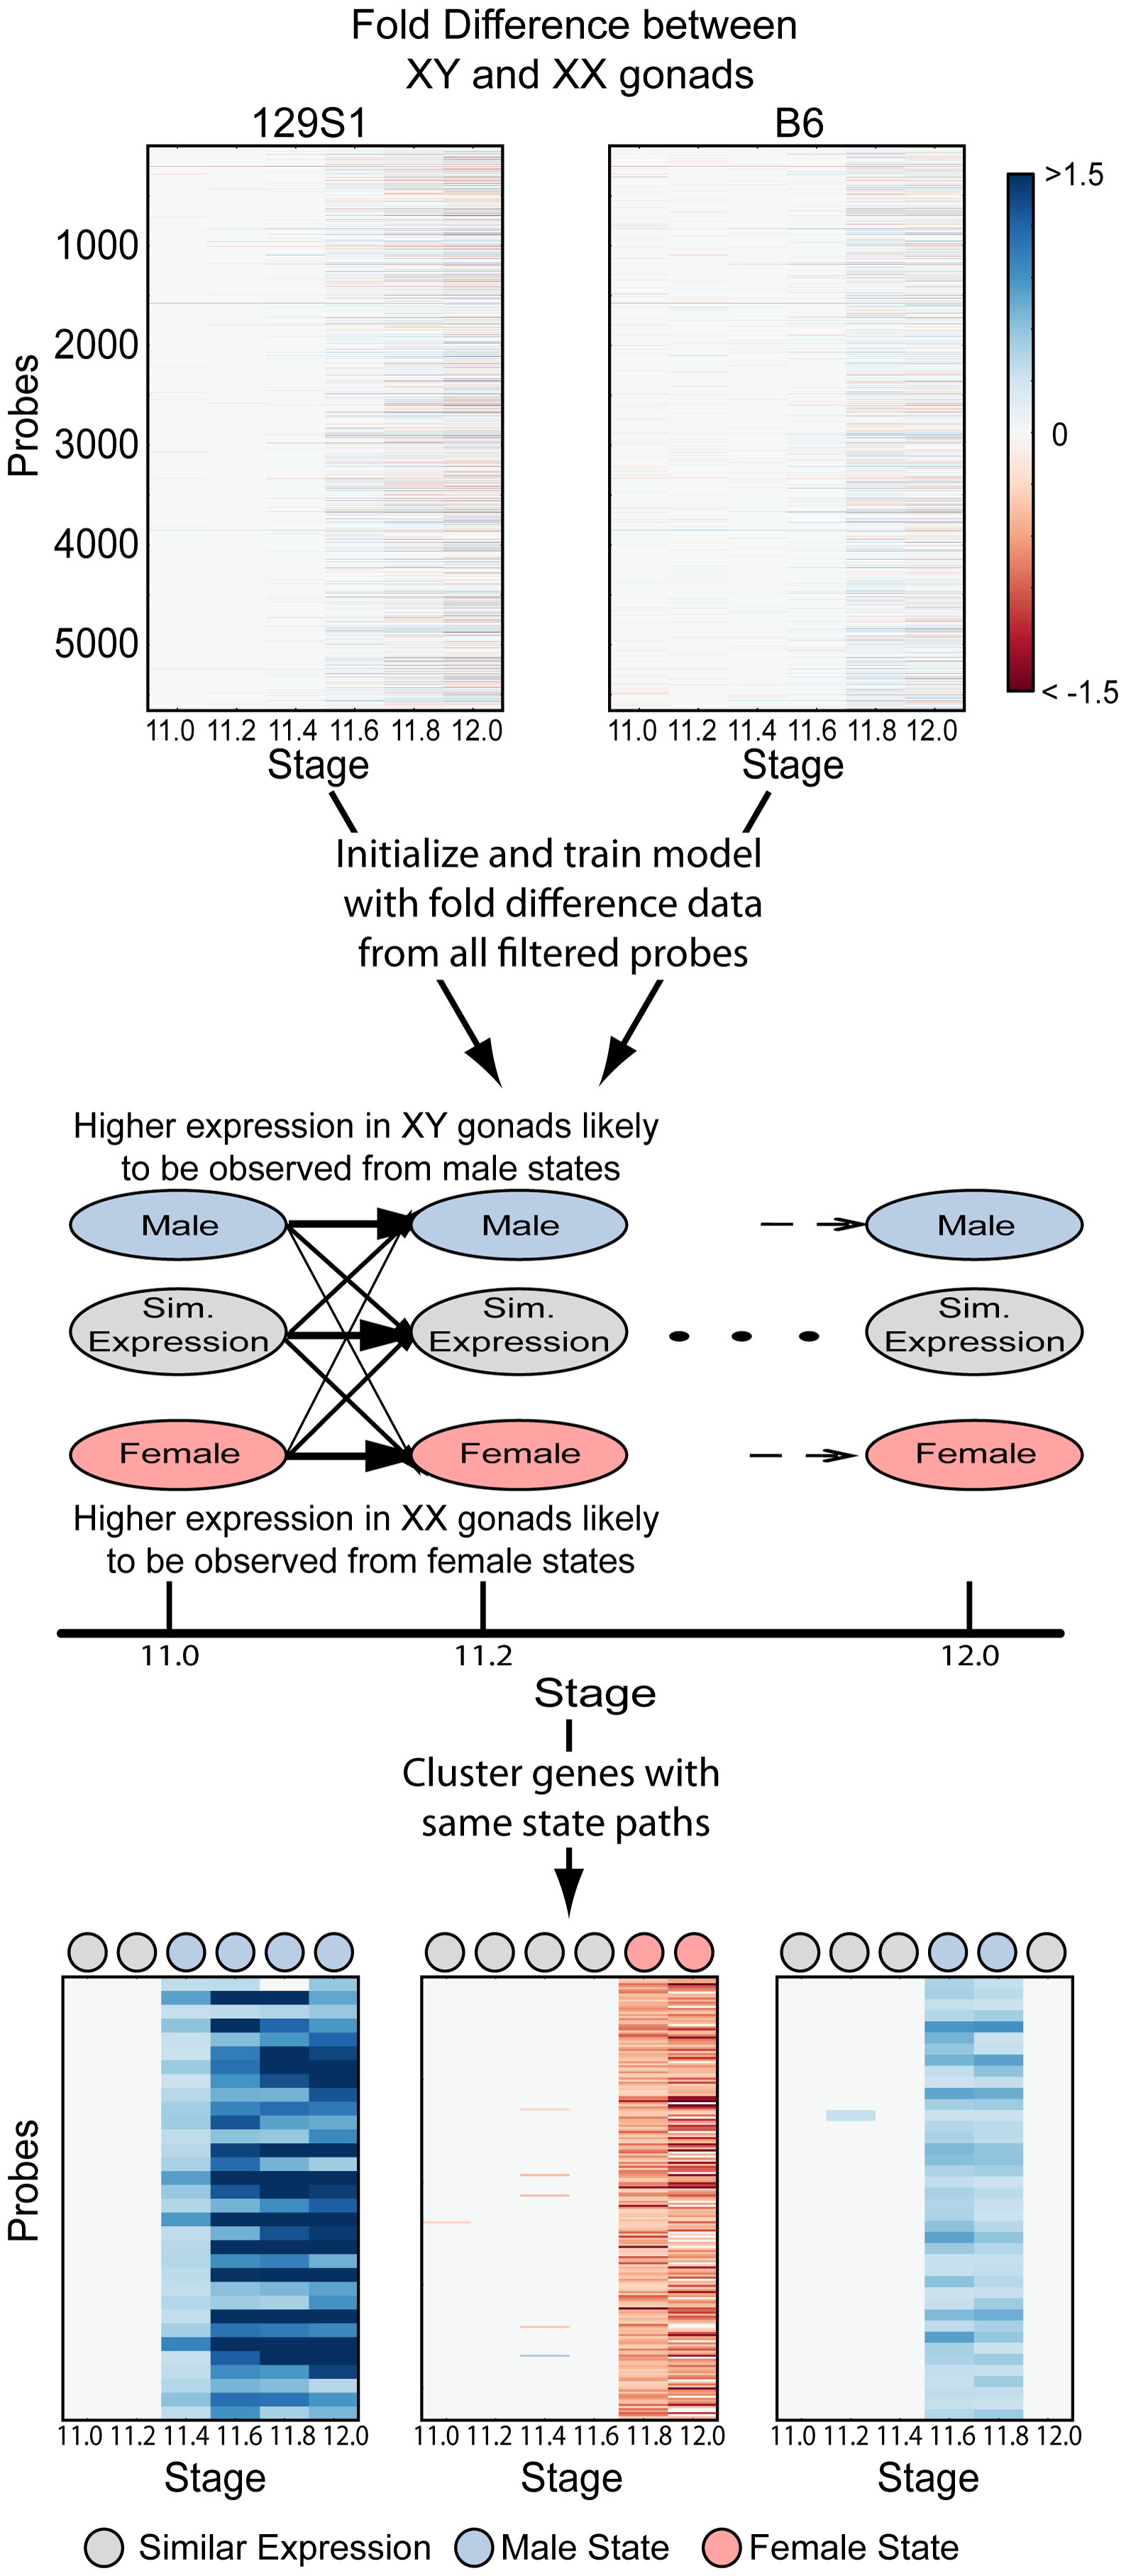 A Hidden Markov Model (HMM) to identify patterns of dimorphic expression in the gonad transcriptome.